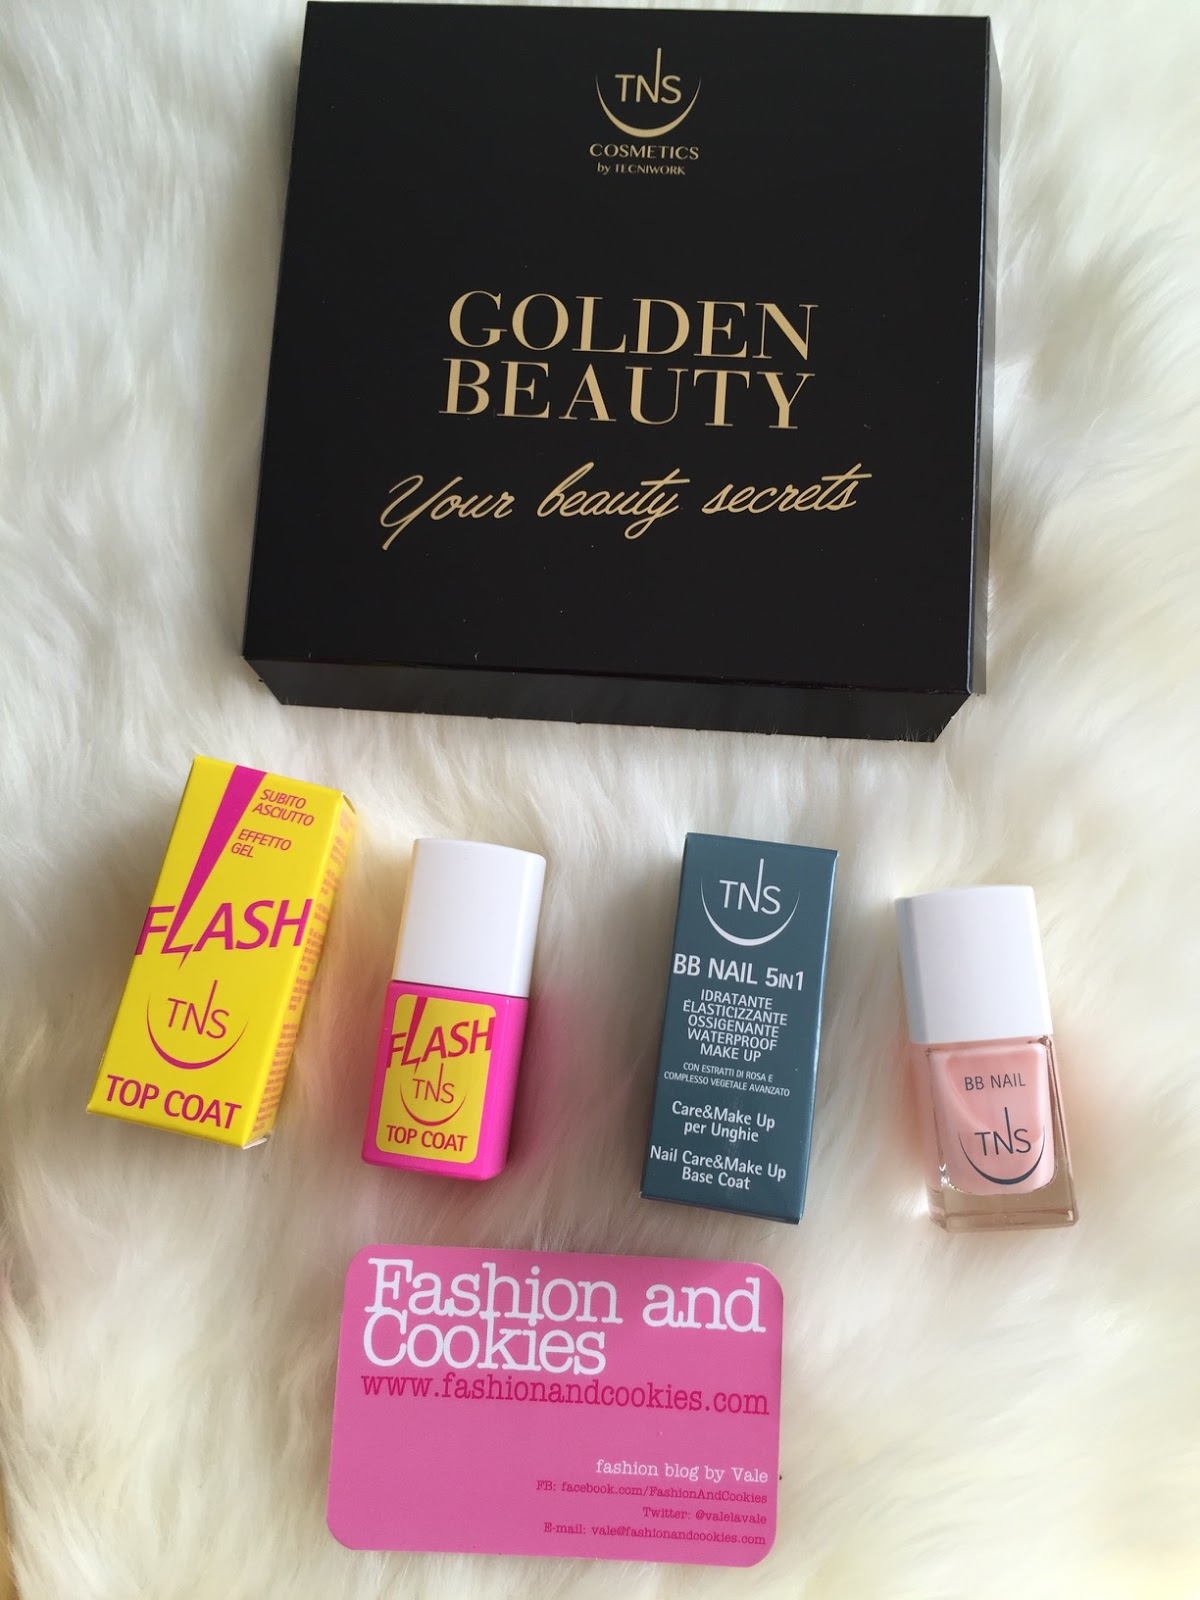 TNS cosmetics golden beauty flash top coat and bb nail on Fashion and Cookies beauty blog, beauty blogger